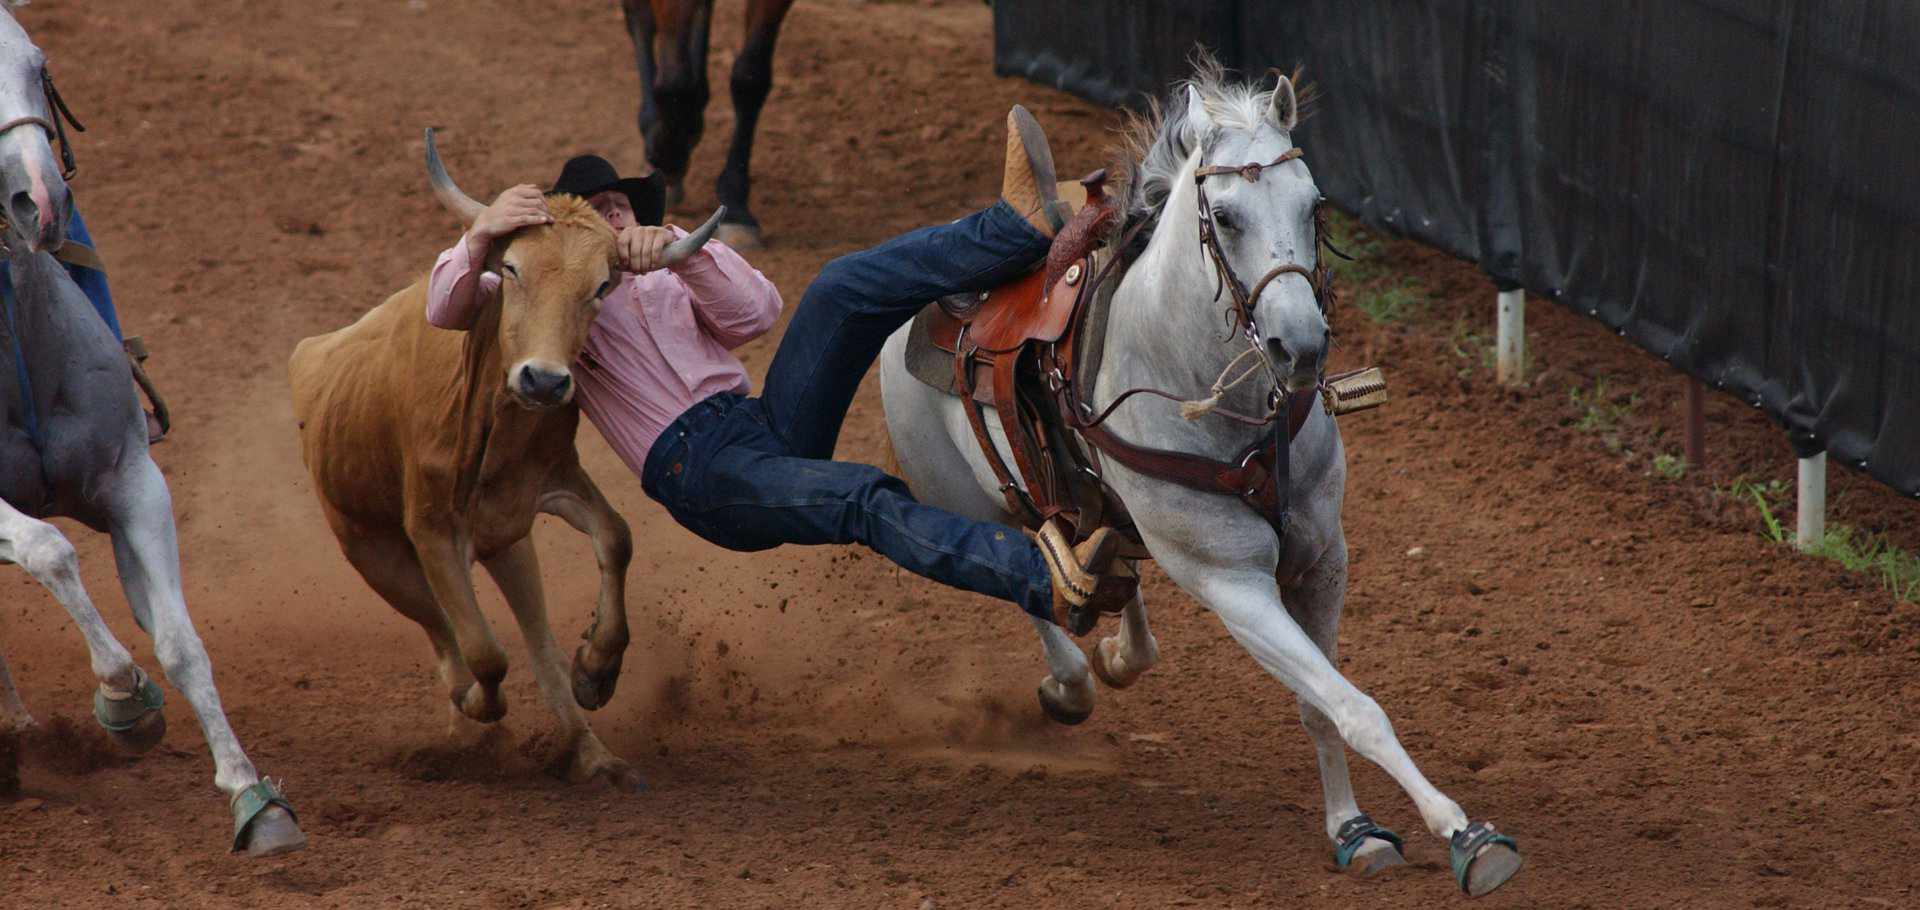 Oklahoma Rodeos with man falling off mustang